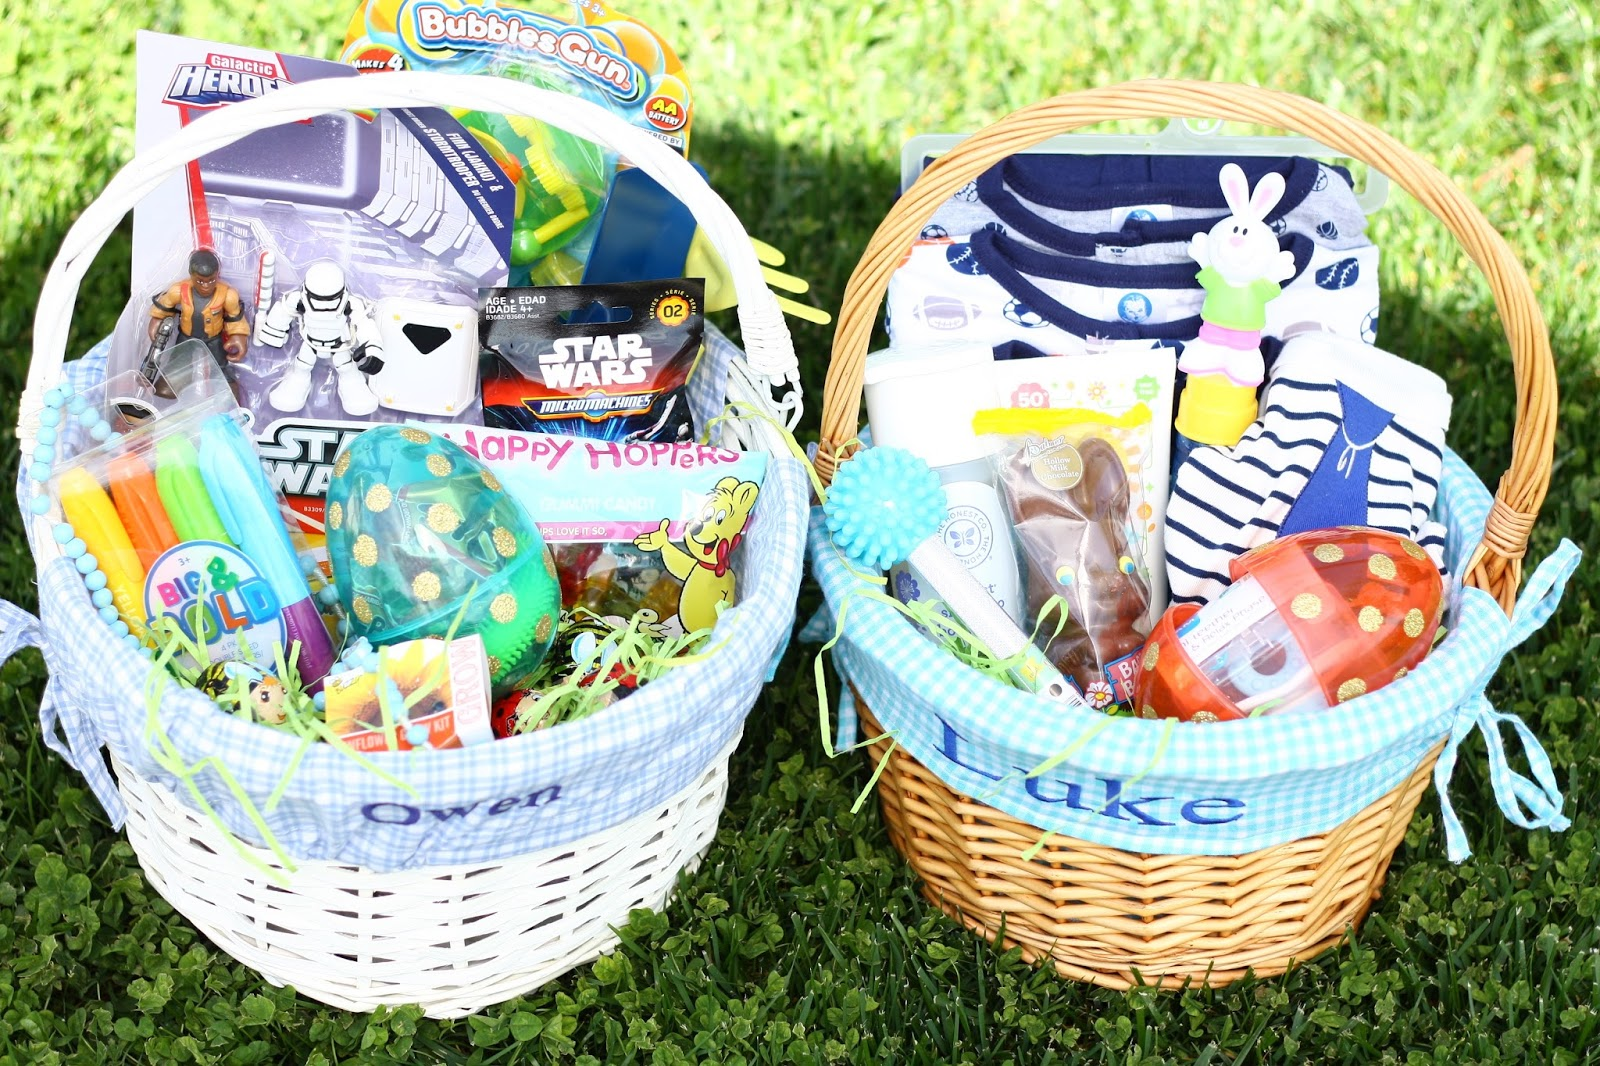 Meet the sullivans owen and lukes easter baskets 2016 i had a lot of fun filling the boys easter baskets this year i cant wait for easter morning when they get to open them negle Image collections